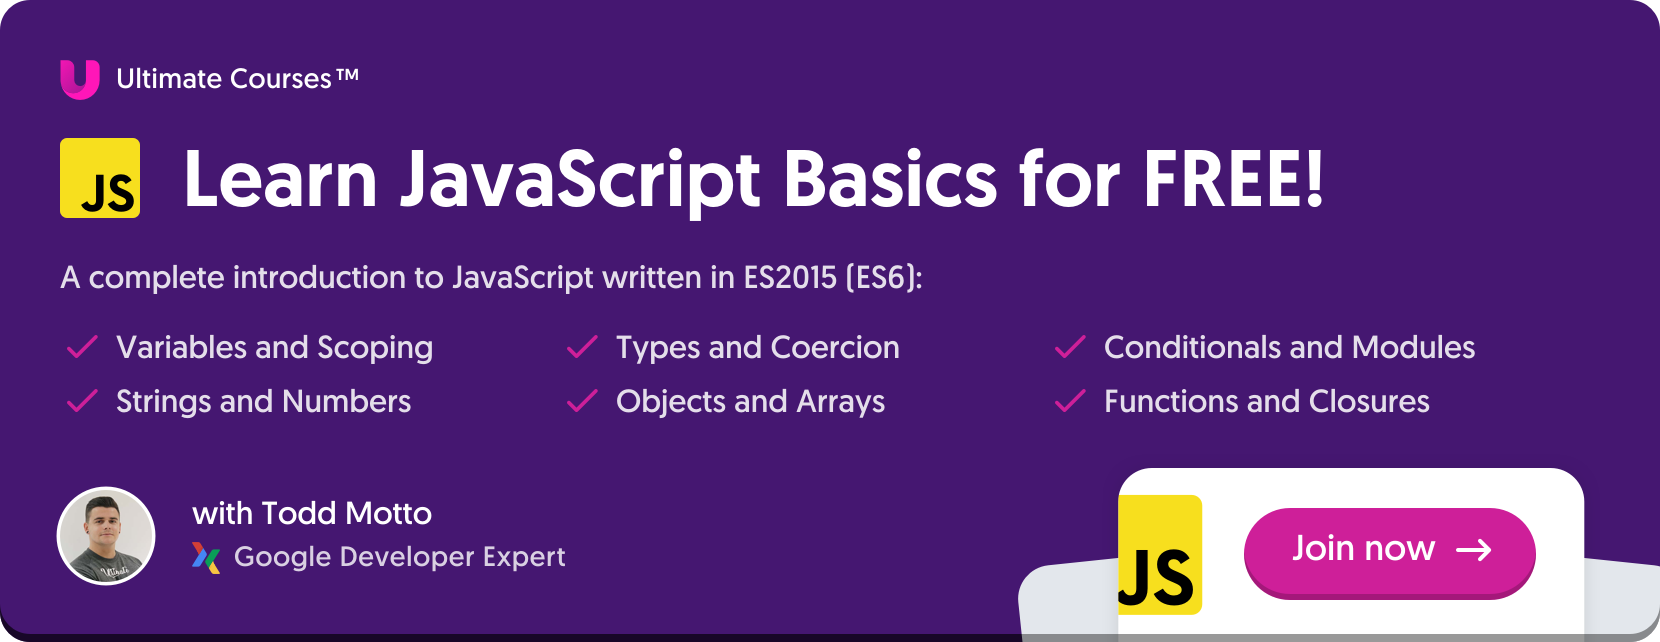 Learn JavaScript basics for free